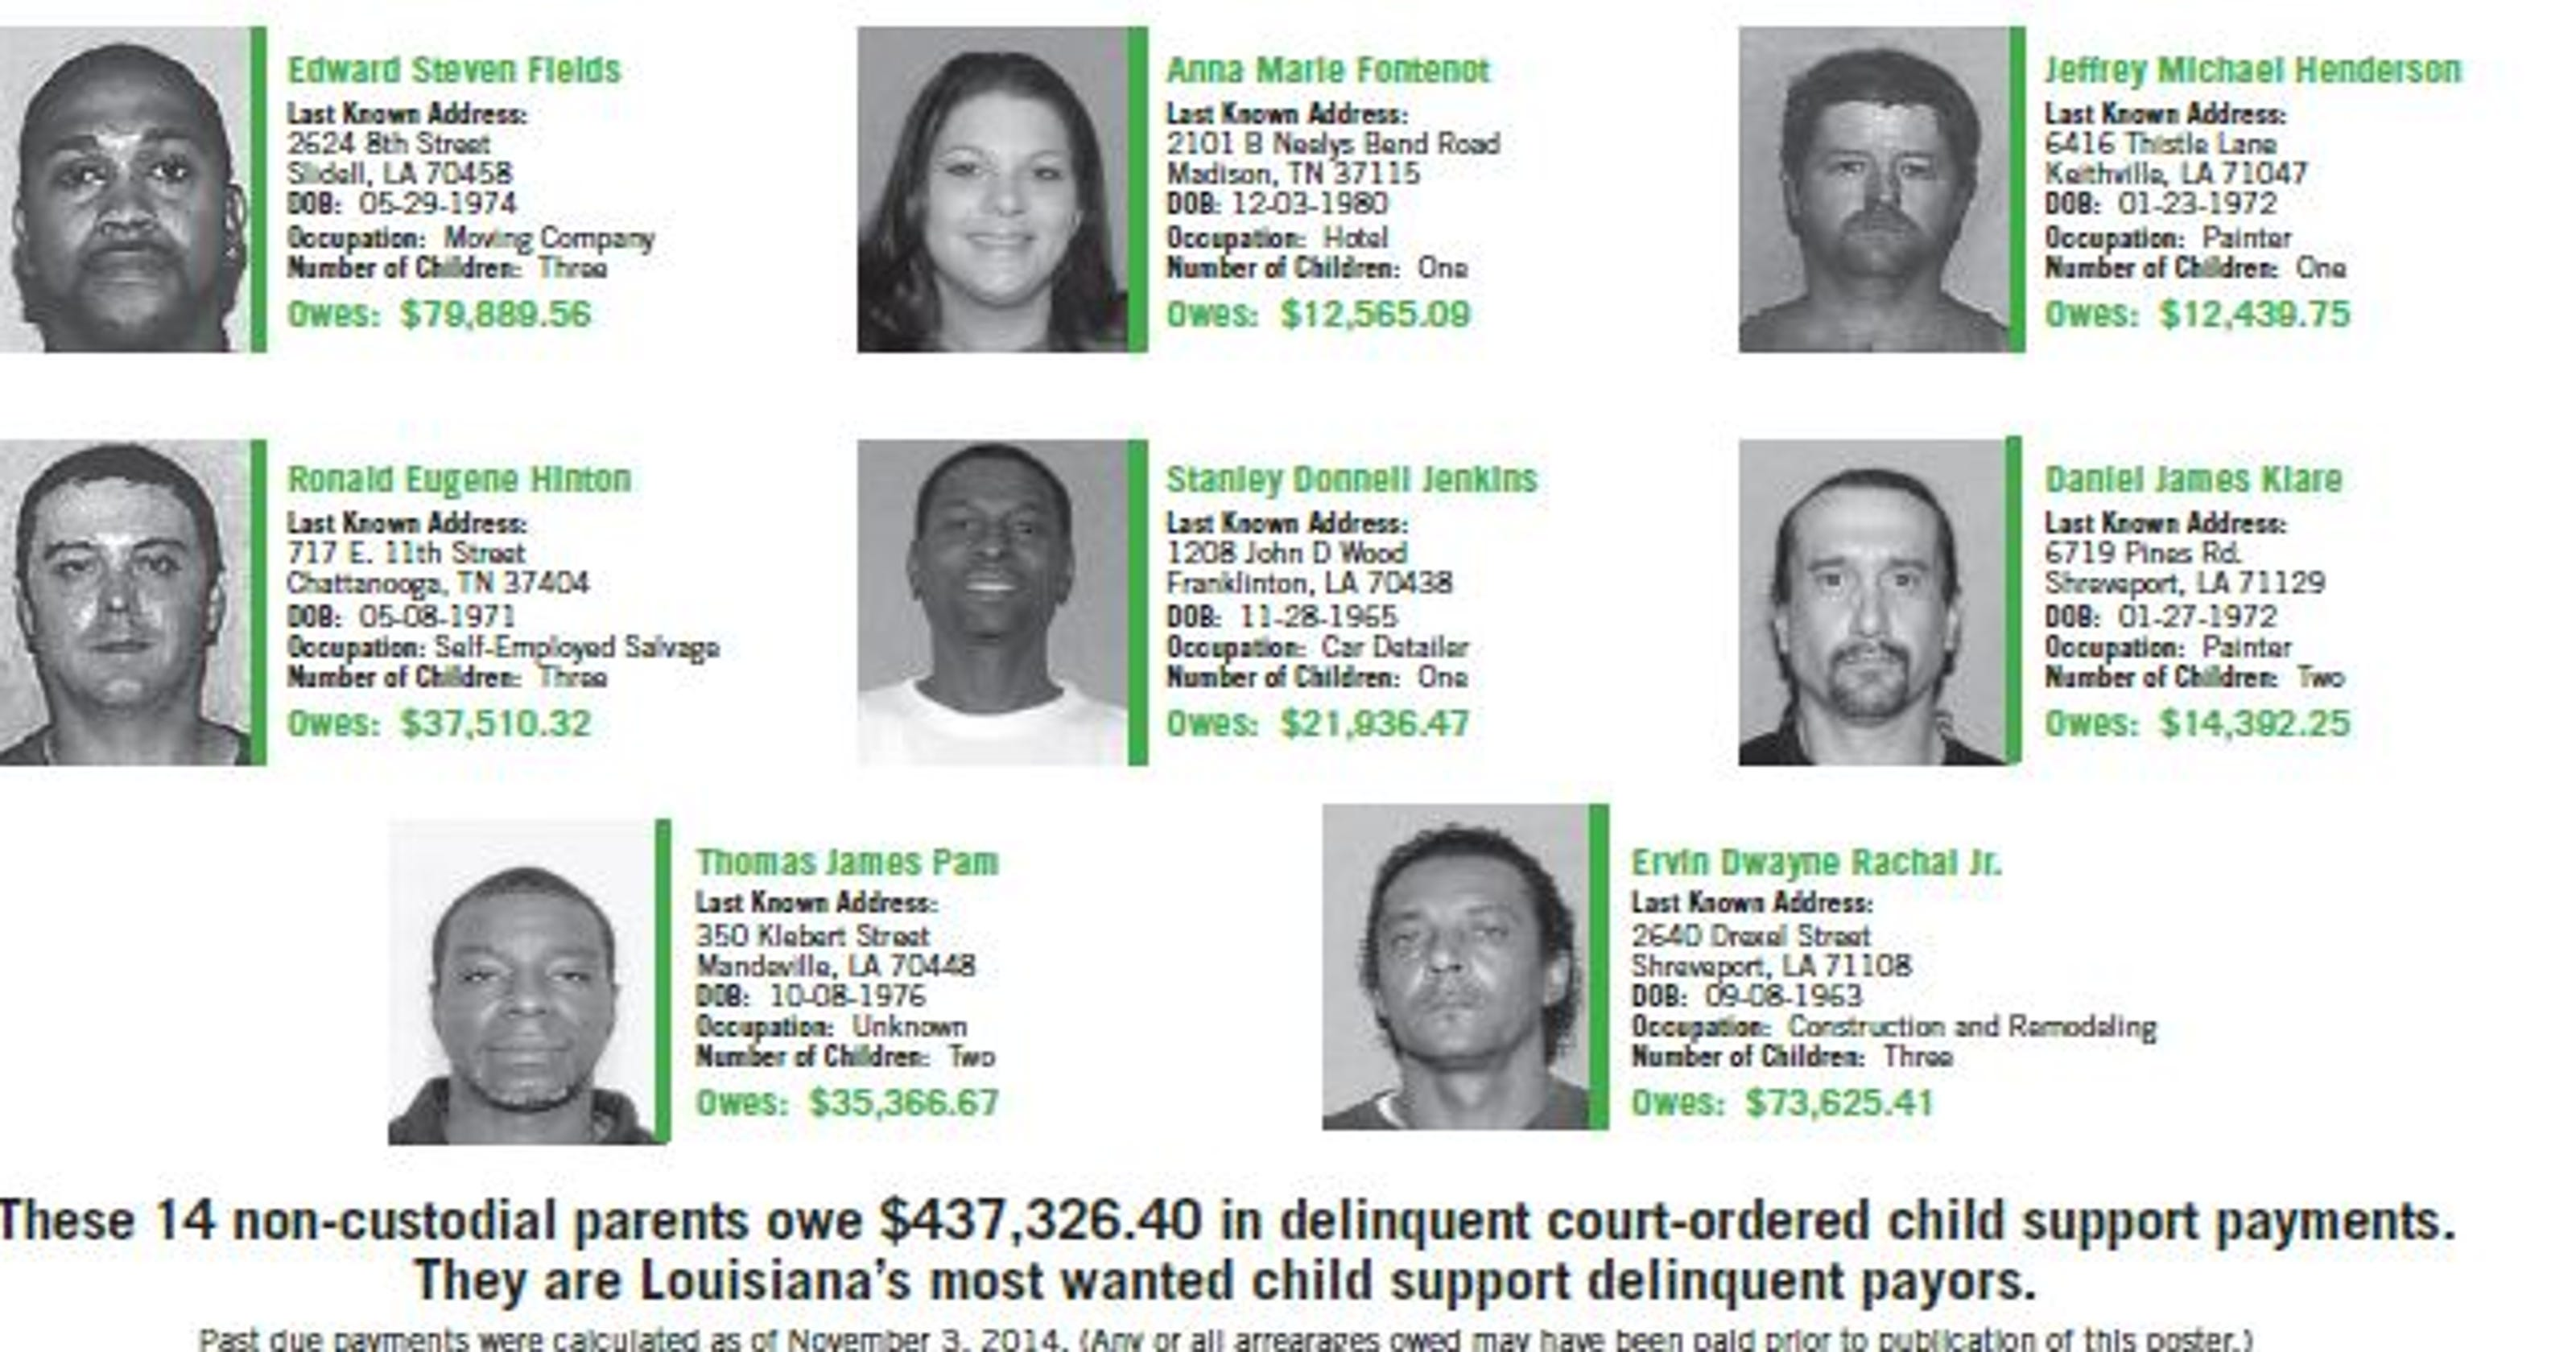 2 Shreveporters in 'deadbeat' parent most-wanted list